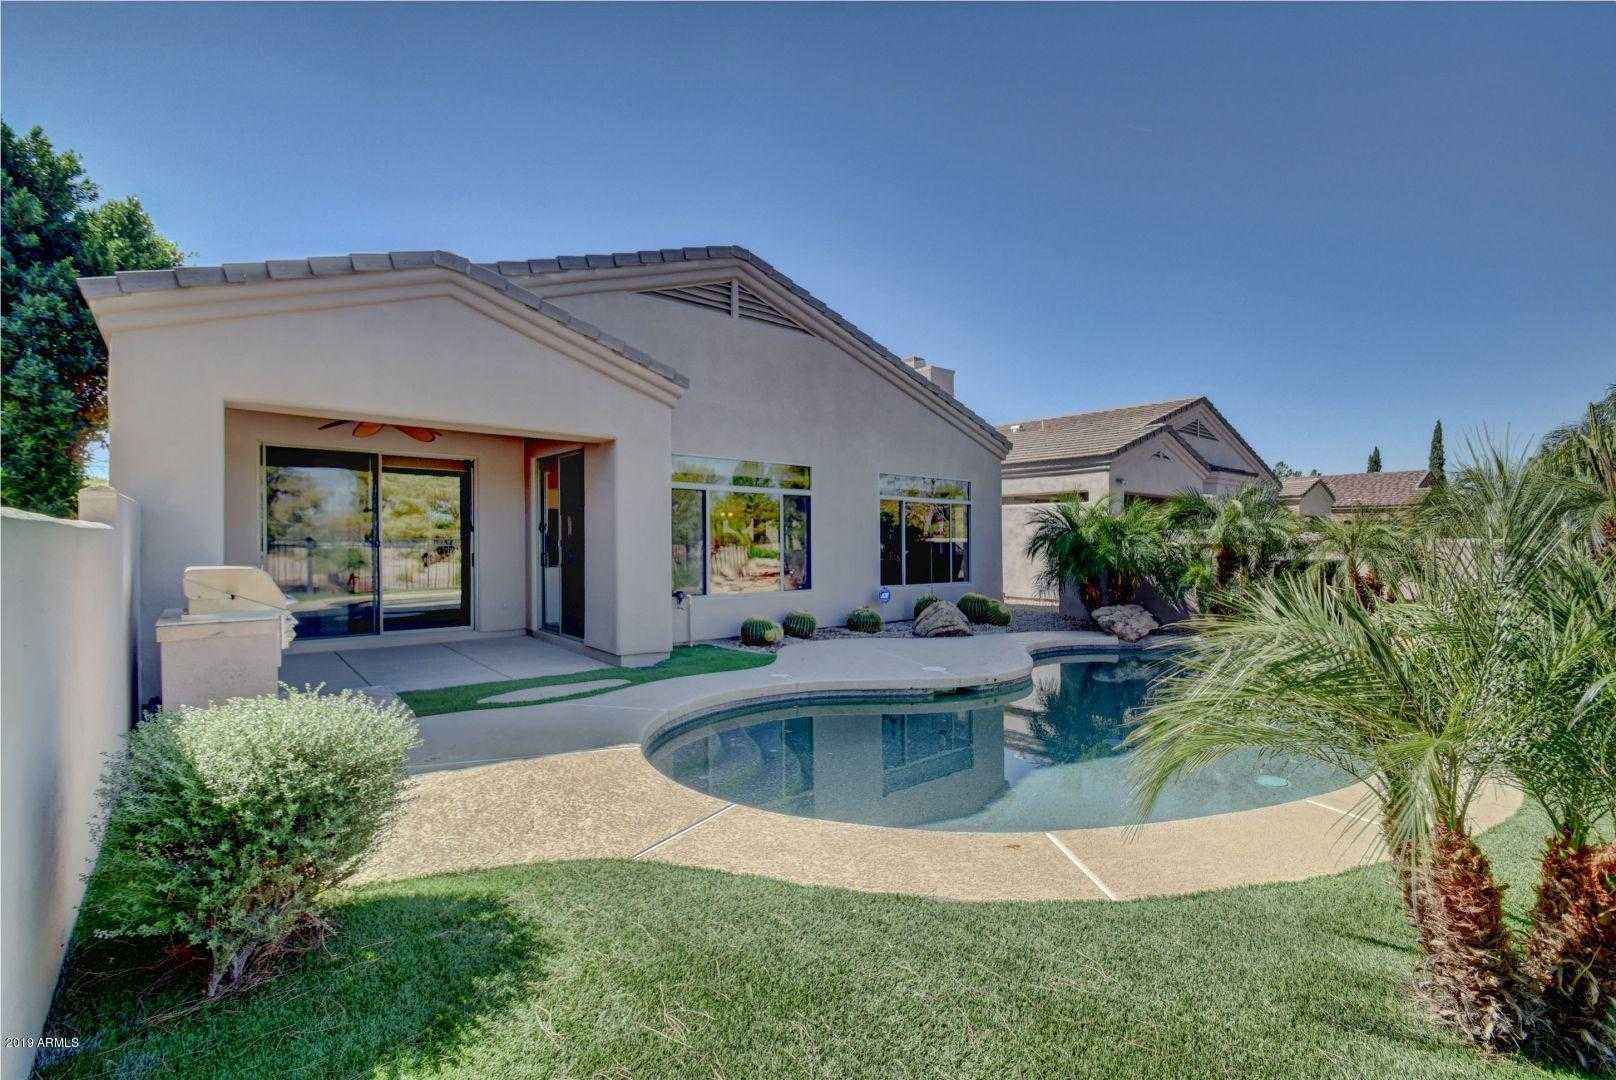 $395,000 - 3Br/2Ba - Home for Sale in Pines At The Raven, Phoenix